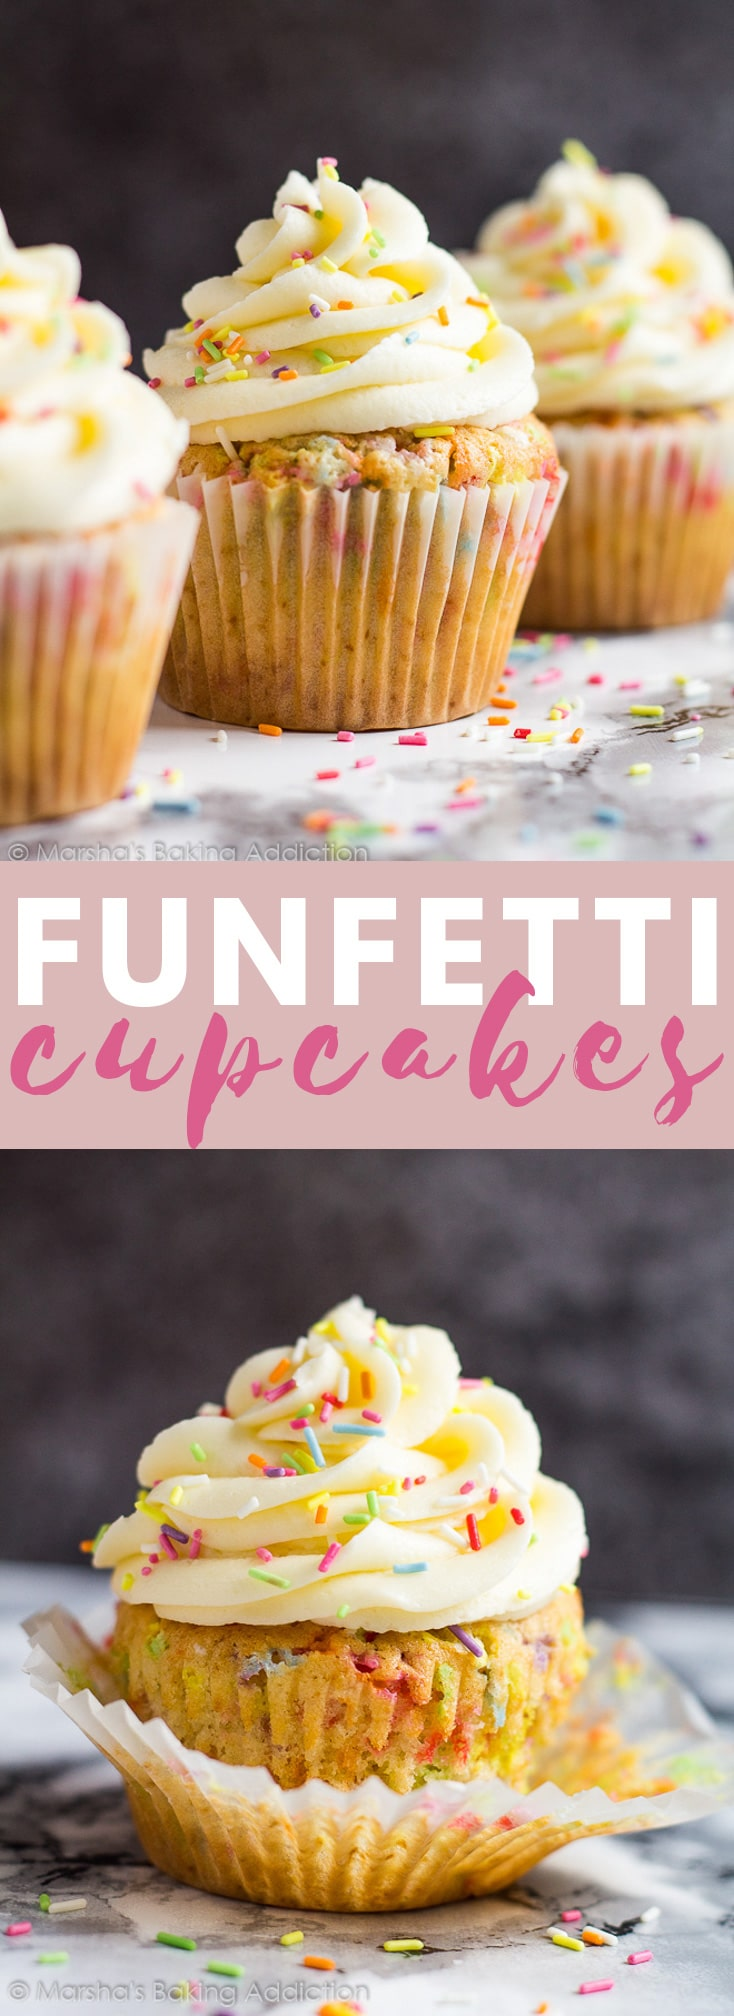 Funfetti Cupcakes- Deliciously moist and fluffy vanilla cupcakes loaded with rainbow sprinkles and topped with sweet vanilla buttercream frosting! #funfetti #cupcakes #cupcakerecipes